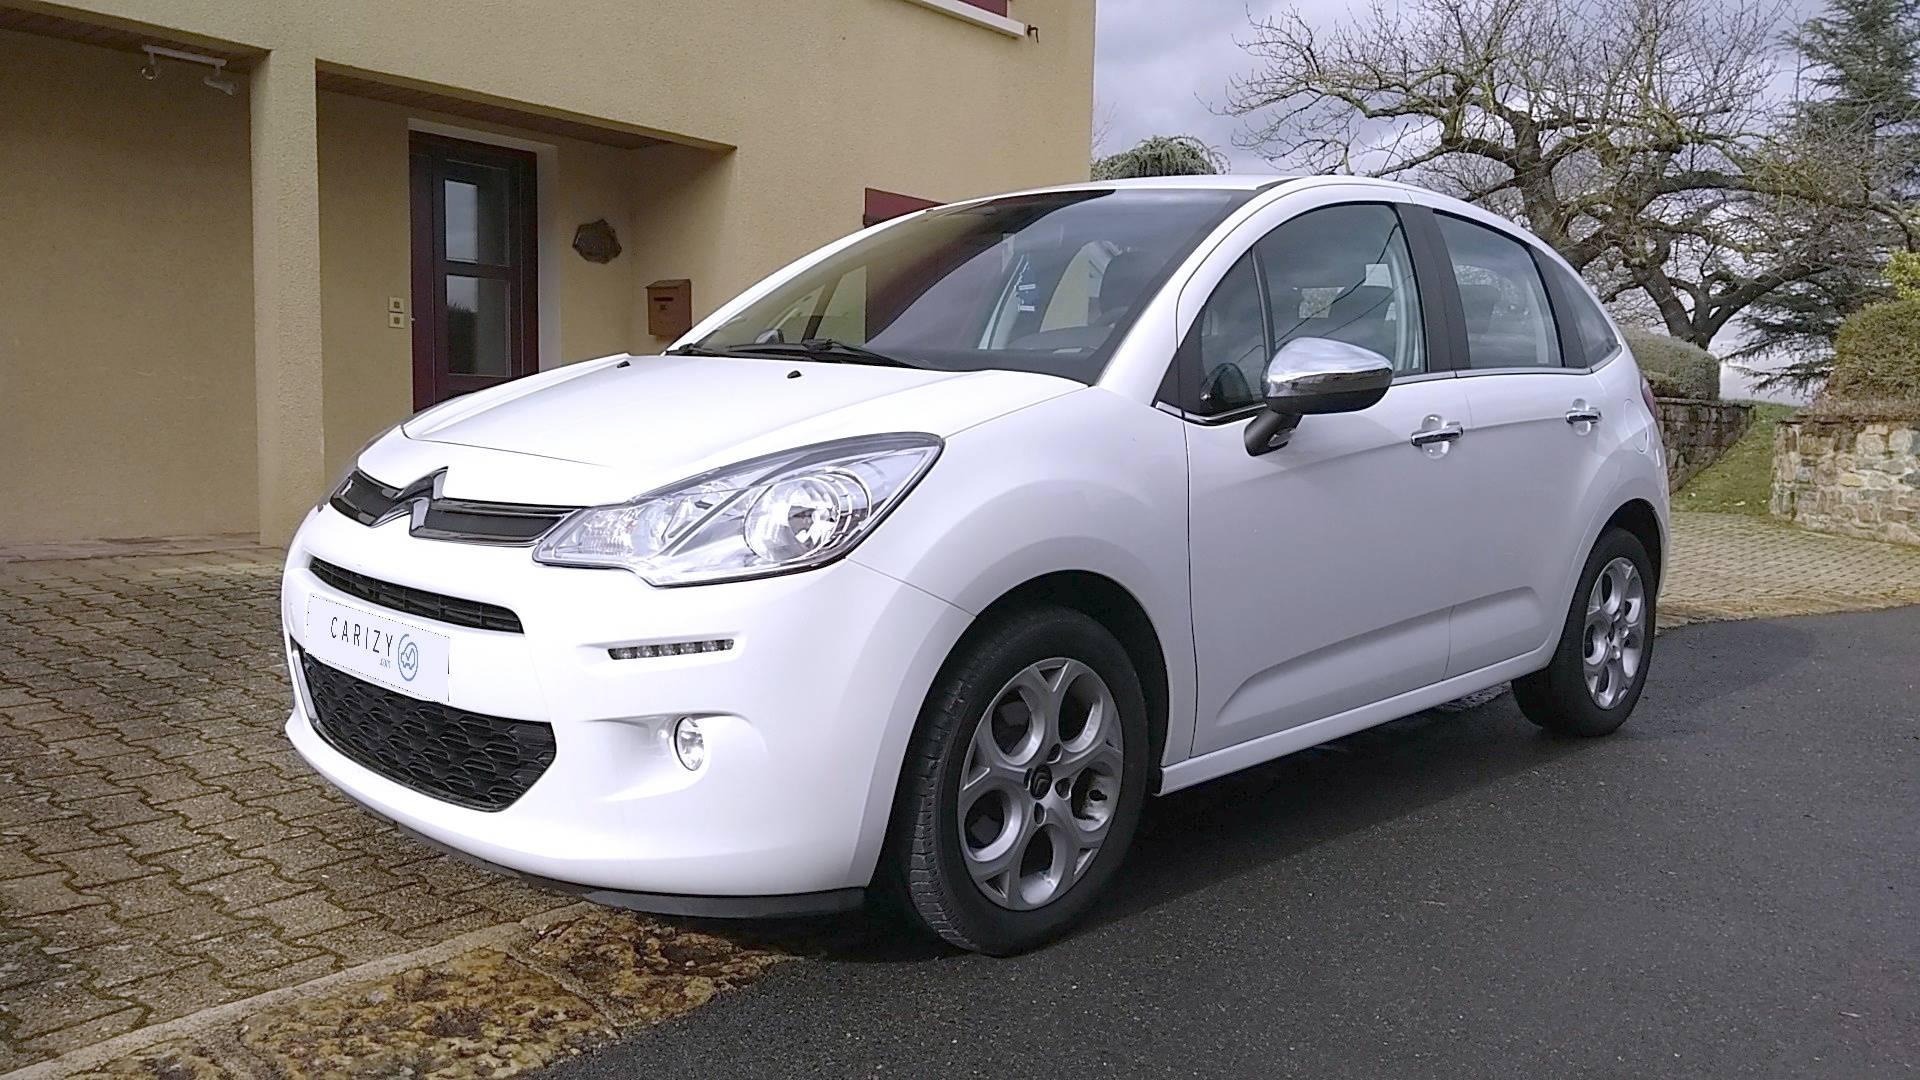 CITROEN C3 d'occasion 1.2 80 PURETECH FEEL EDITION SAVIGNY ...